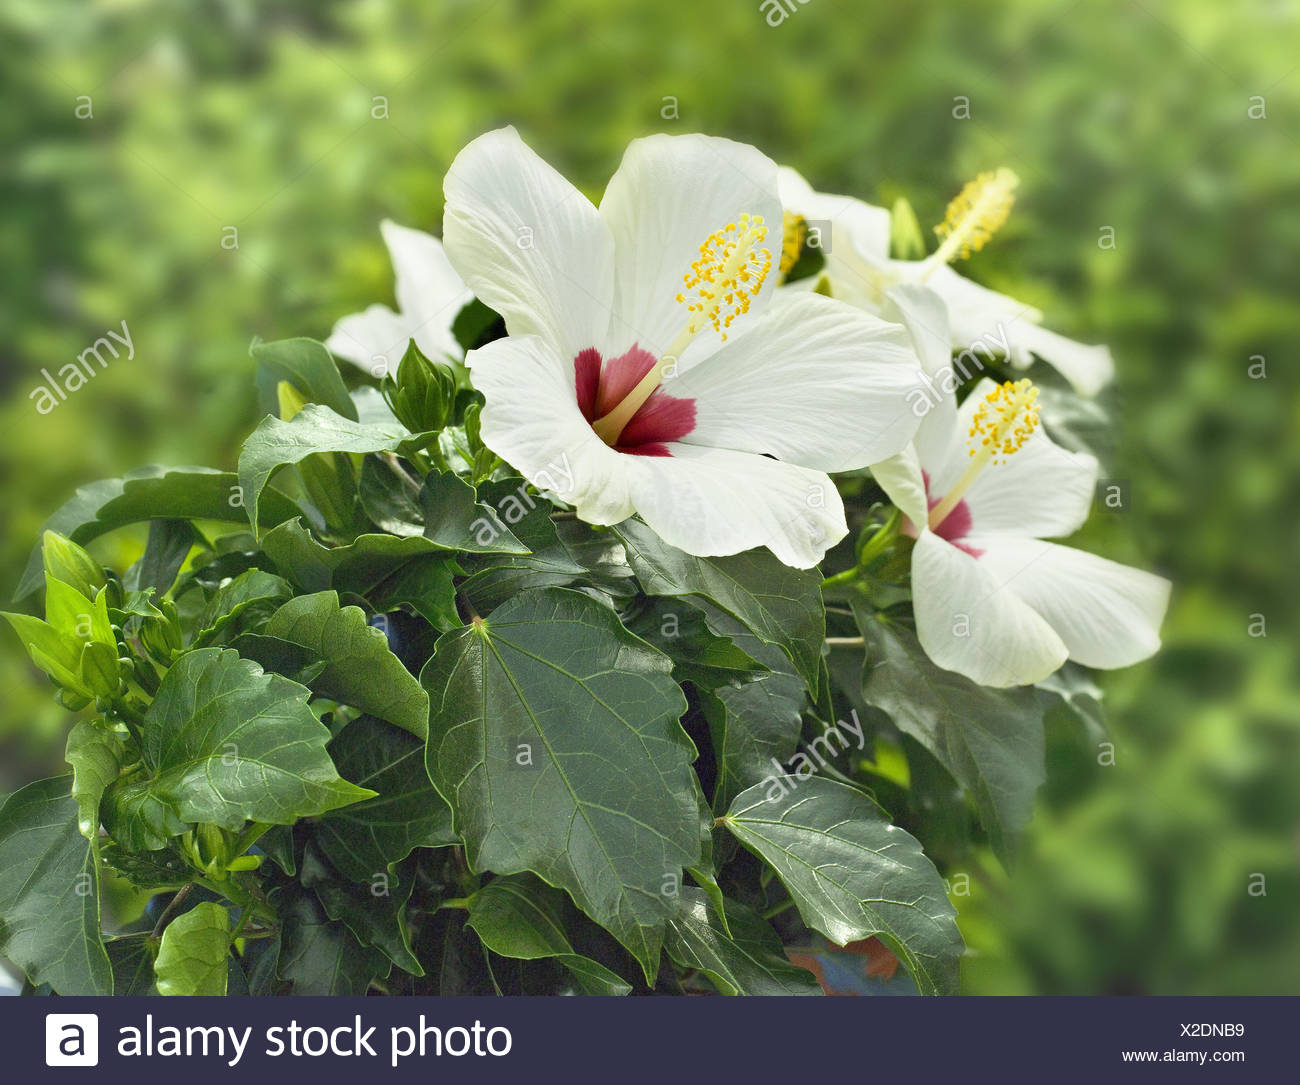 Garden, hibiscus, blossoms, white-red, plants, bloomer, mallow plant, shrub marsh mallow, ornamental plant, flower shrub, flowers, hibiscus blossoms, period bloom, nature, - Stock Image